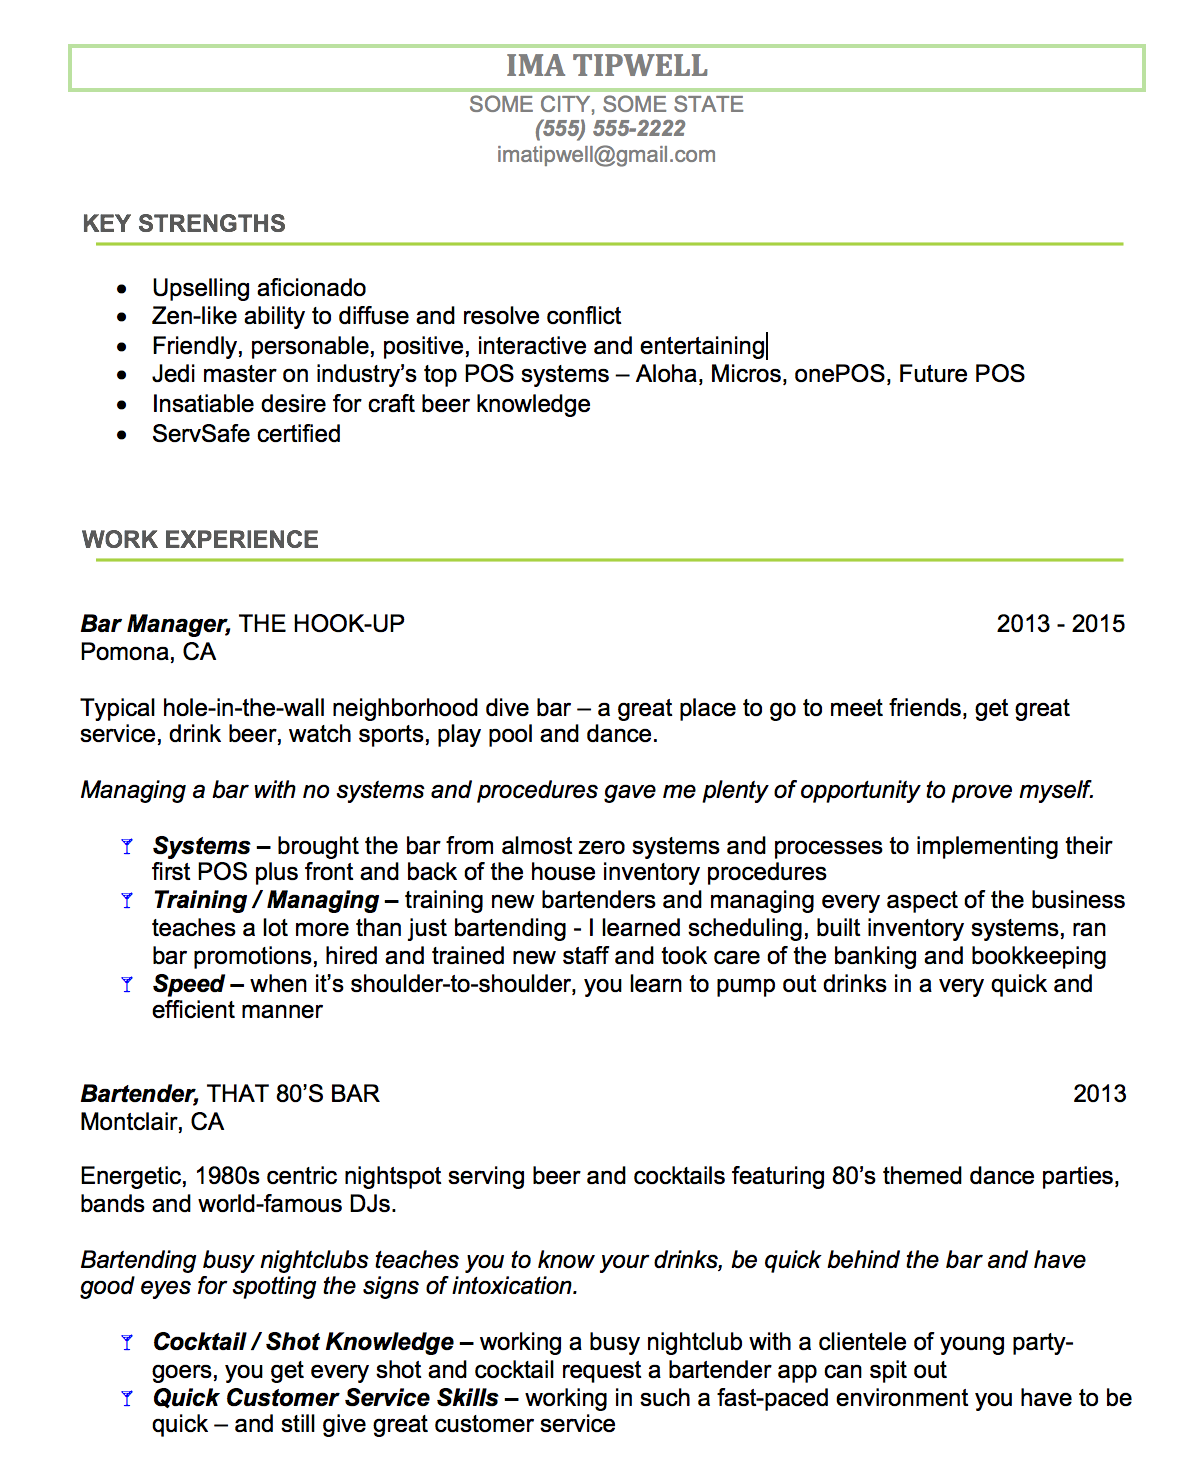 bartending resume example 2 with industry experience